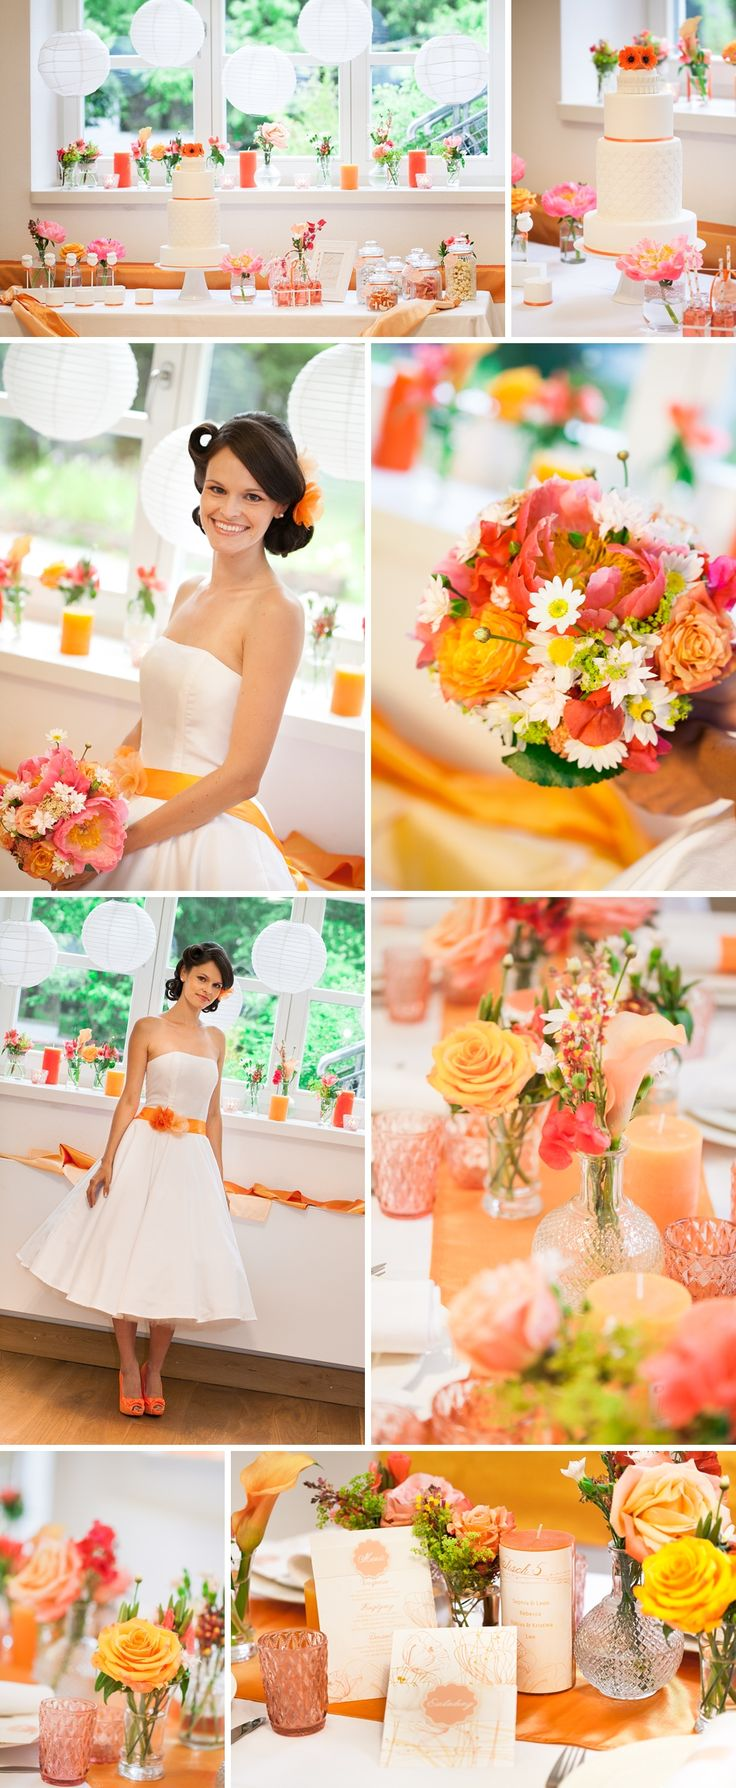 Apricot Wedding color scheme, apricot peach bridal shoot, orange Plants & Flowers; Bridal bouquet of Coral